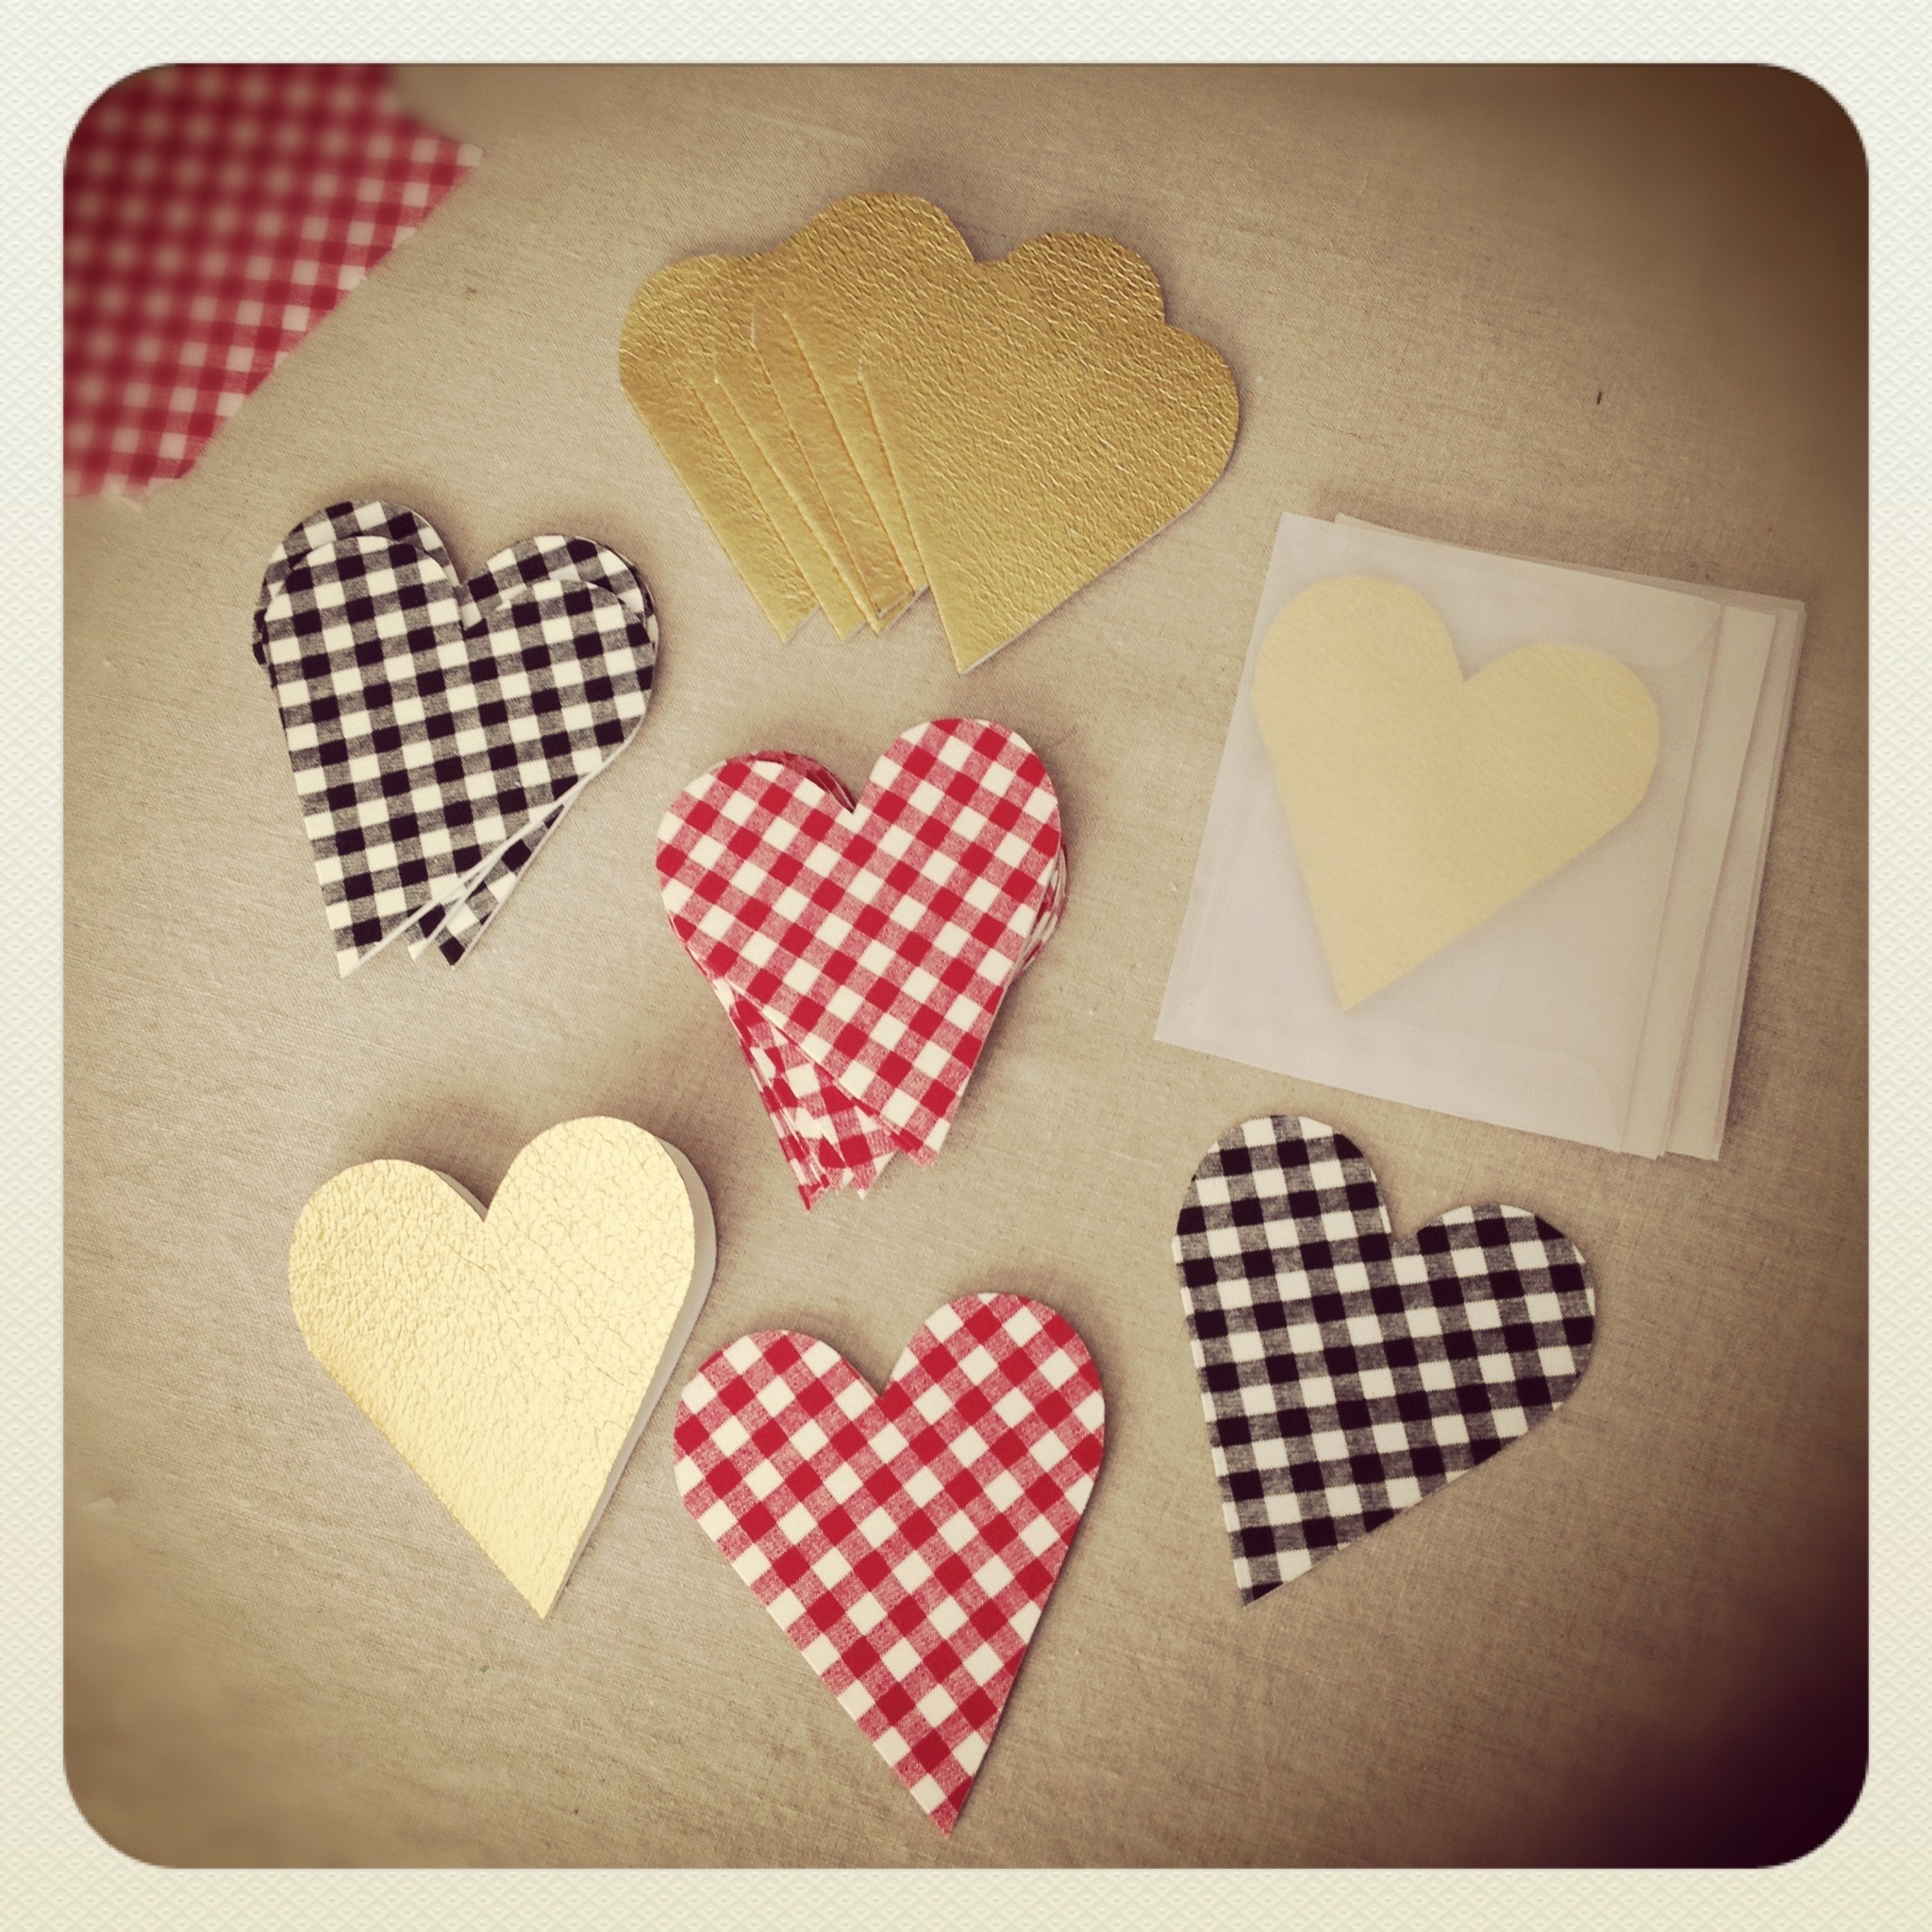 Fabric + paper valentines for the shop!